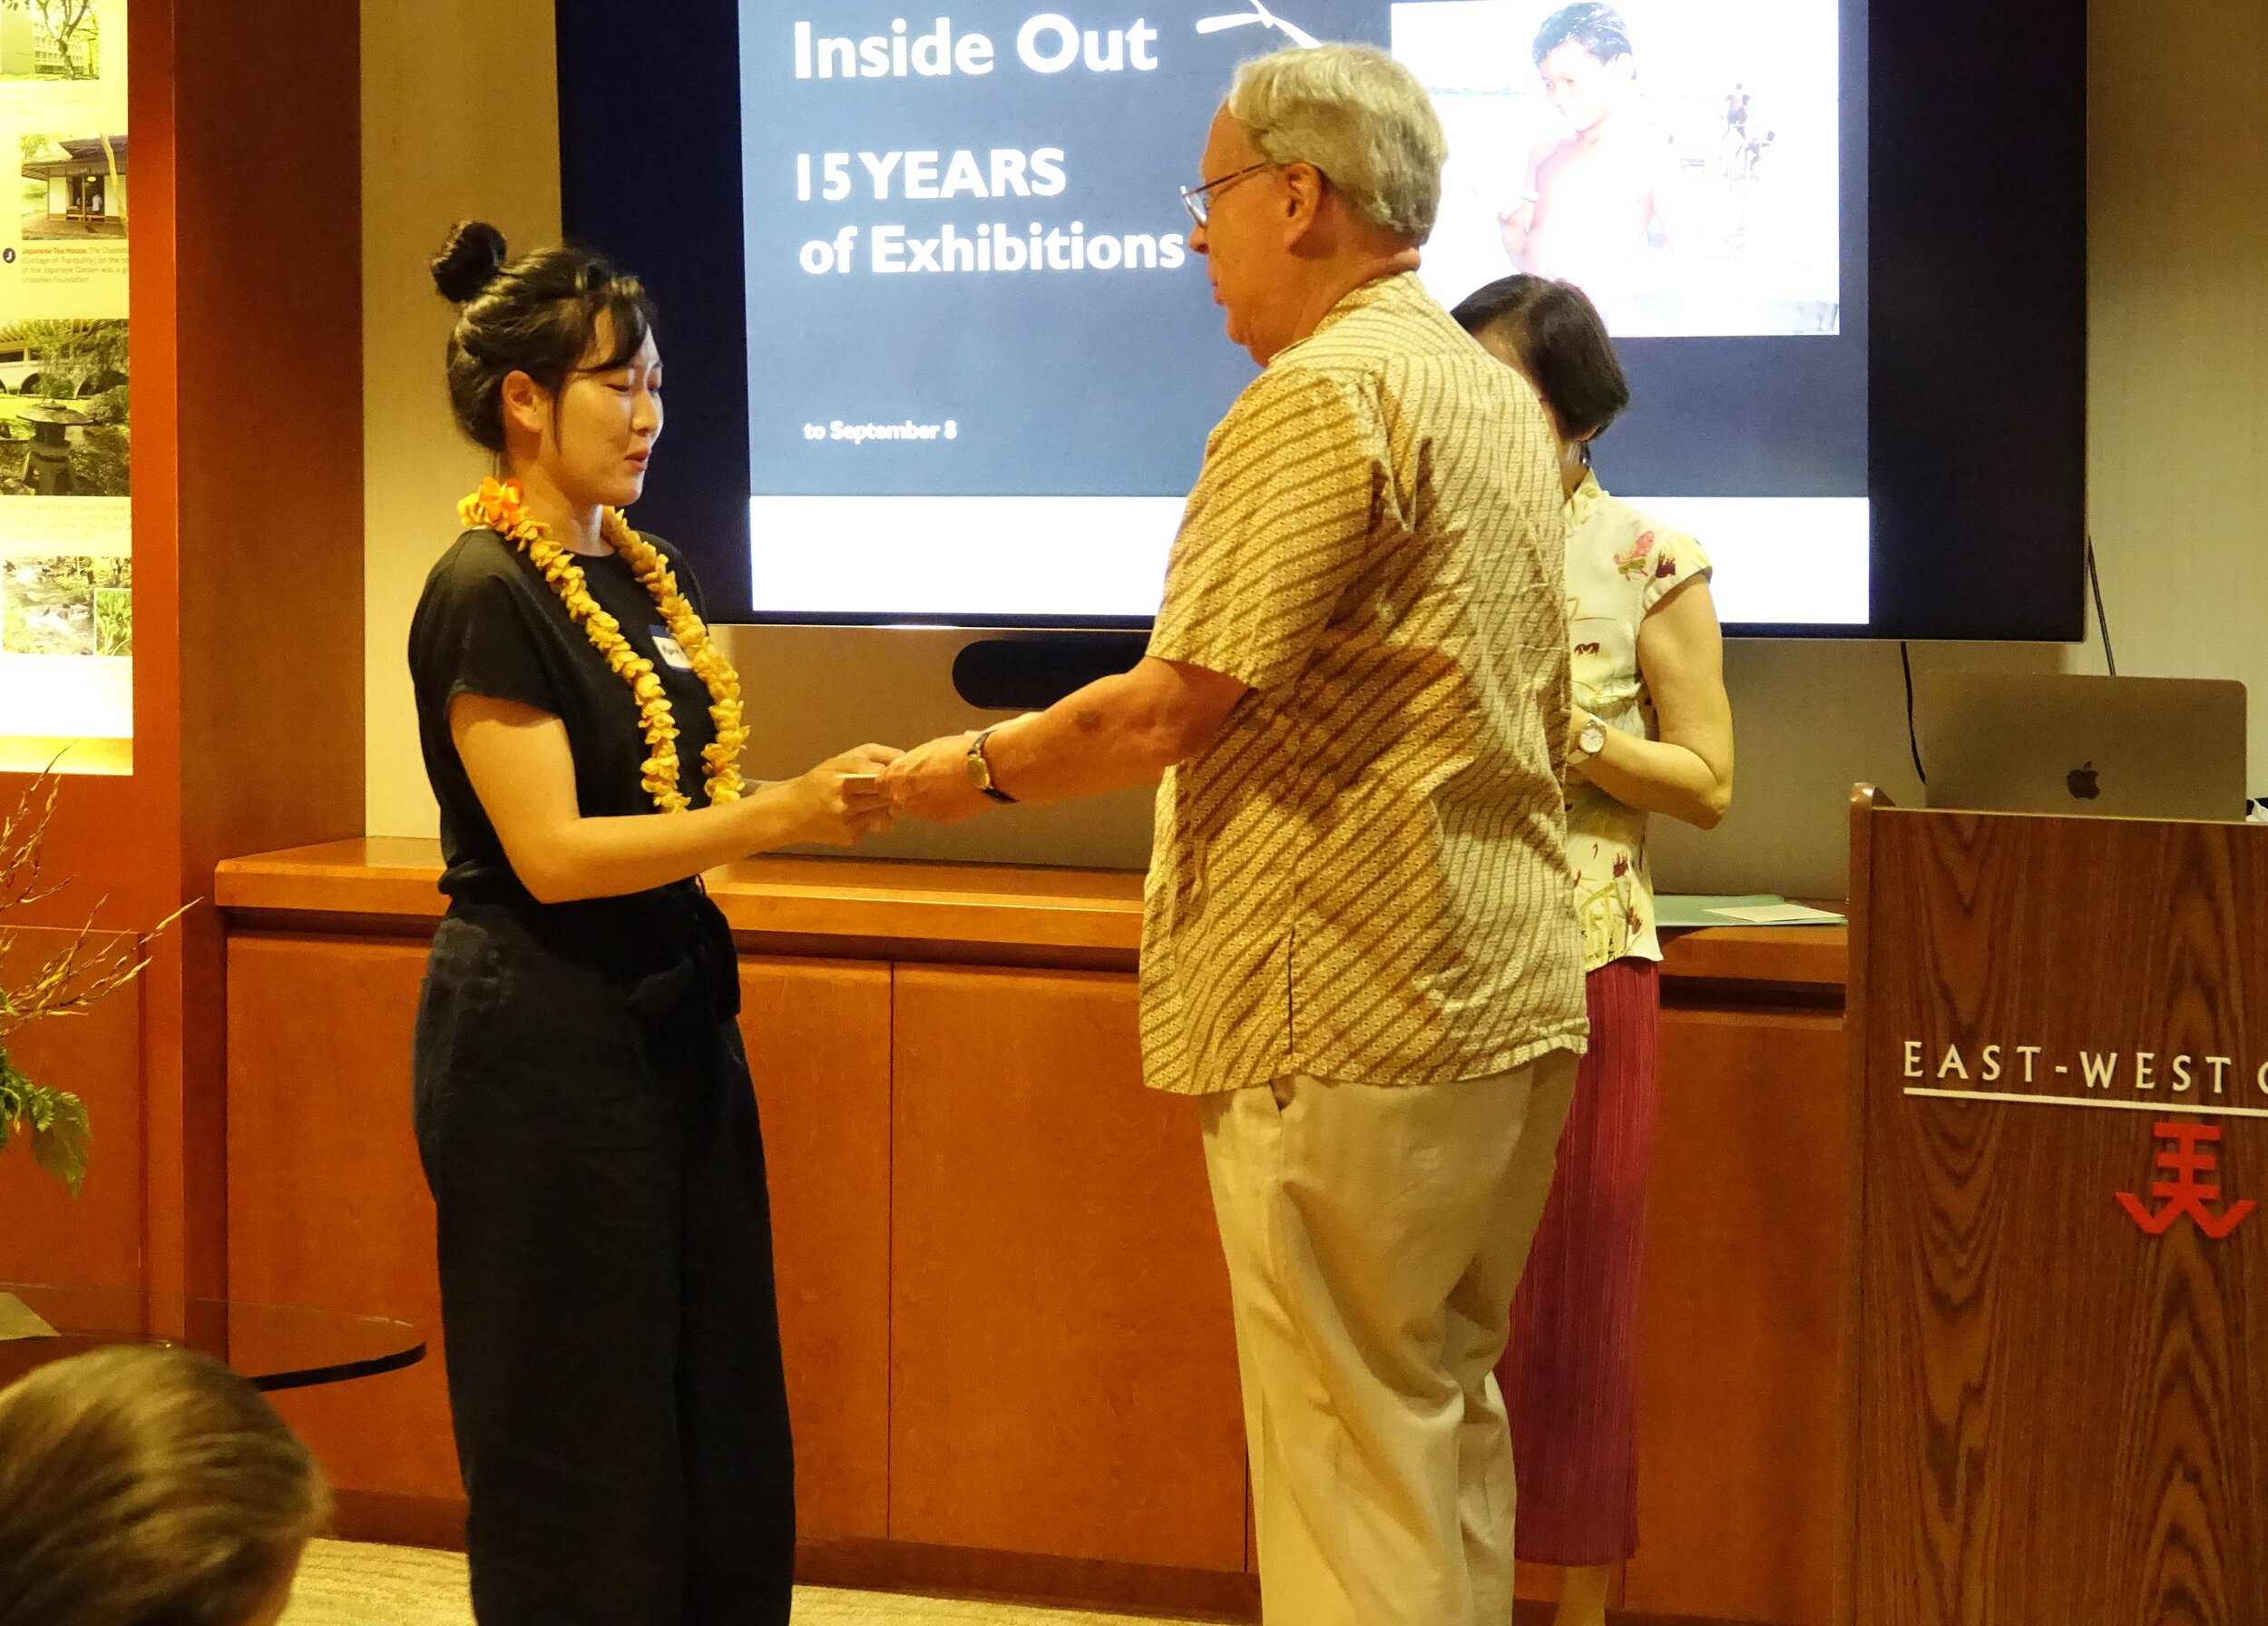 Miss Mary Kim received the Society's Susan Burghardt Special Award of $1,000 from Ambassador Raymond Burghardt for the 2019-2020 academic year. The award was to help her defray the material cost of her graduation project. Mary had a solo exhibition and she invited members to the opening on Sept 8, 3-5 PM, at the Commons Gallery, Art Dept. of UH, Manoa.